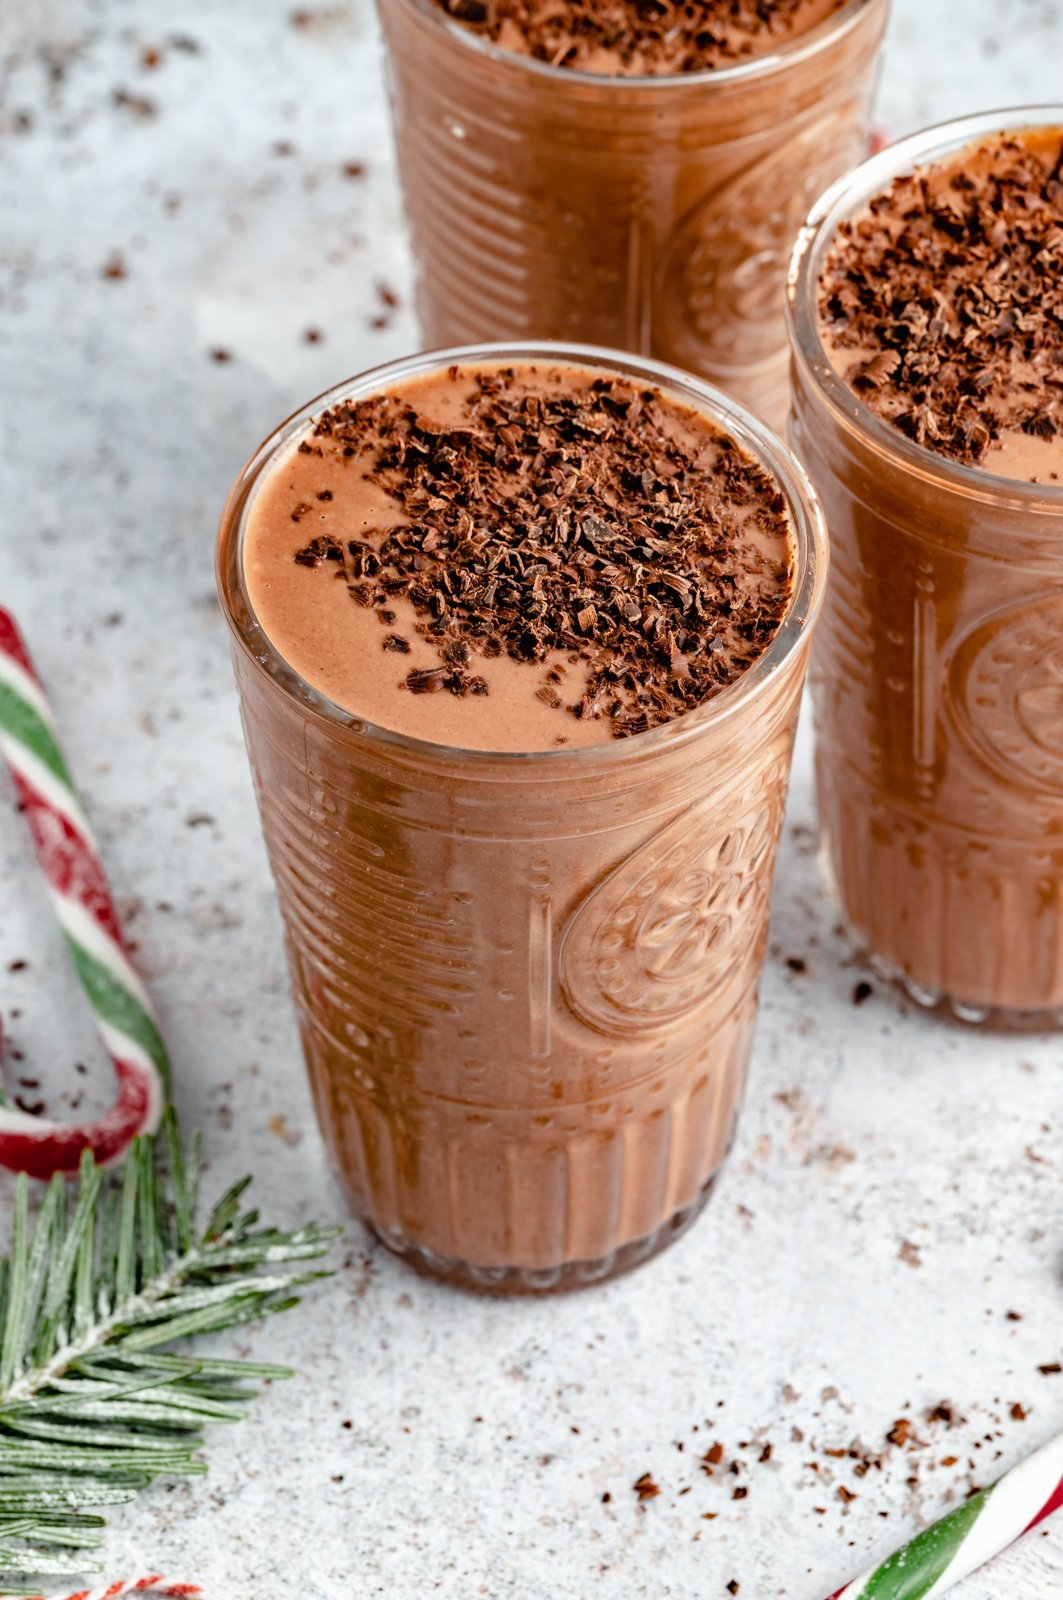 healthy mint chocolate smoothie in a glass topped with cacao nibs